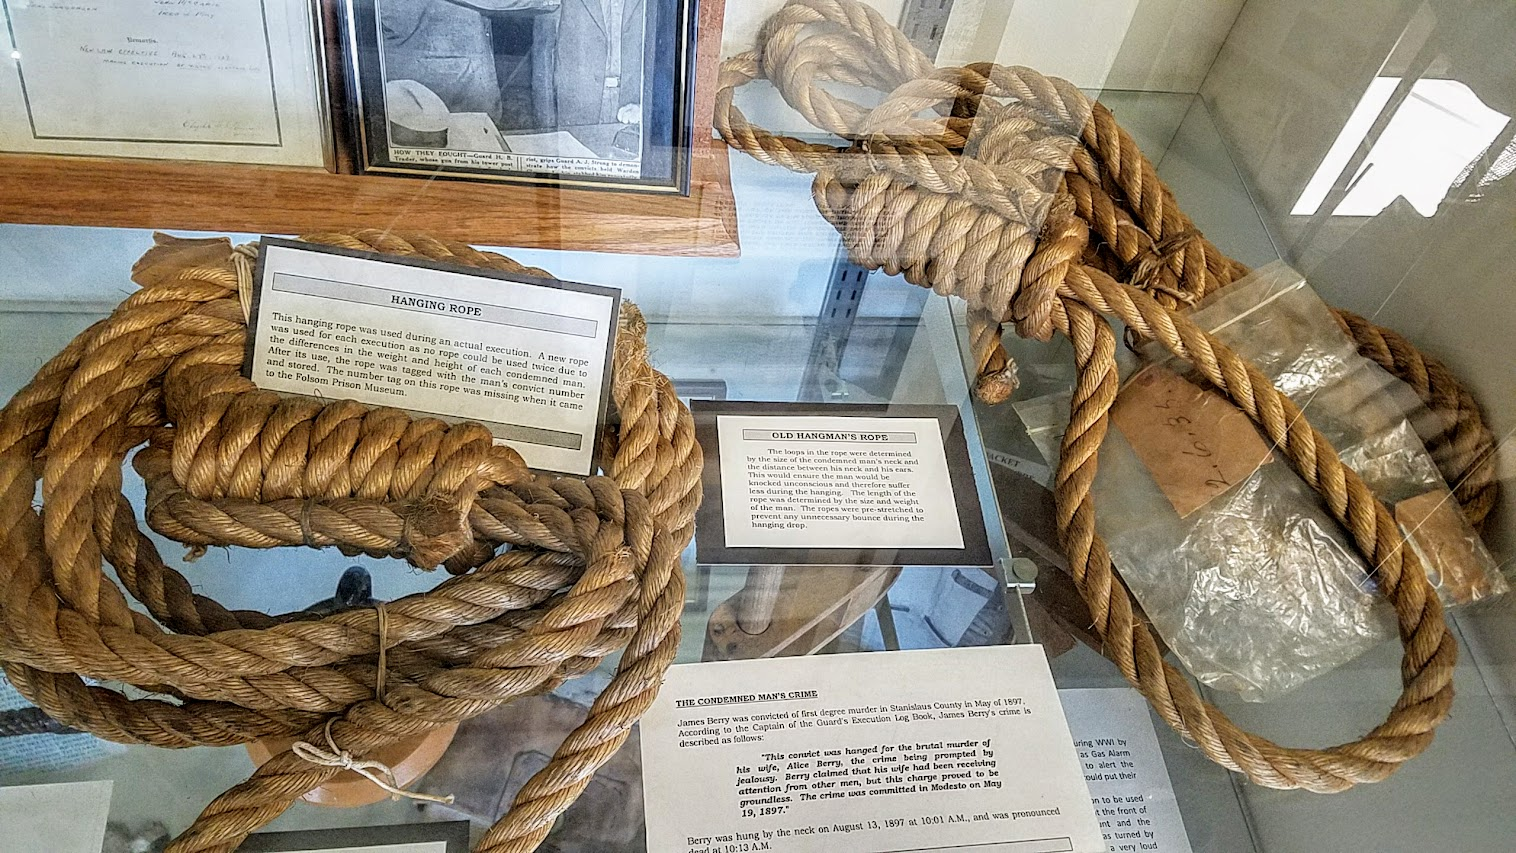 Hanging Ropes from executions. A new rope is used for each execution as no rope could be used twice due to the difference in the weight and height of each condemned man. After its use, the rope was tagged with the man's convict number and stored. From a display case while visiting the Folsom Prison Museum